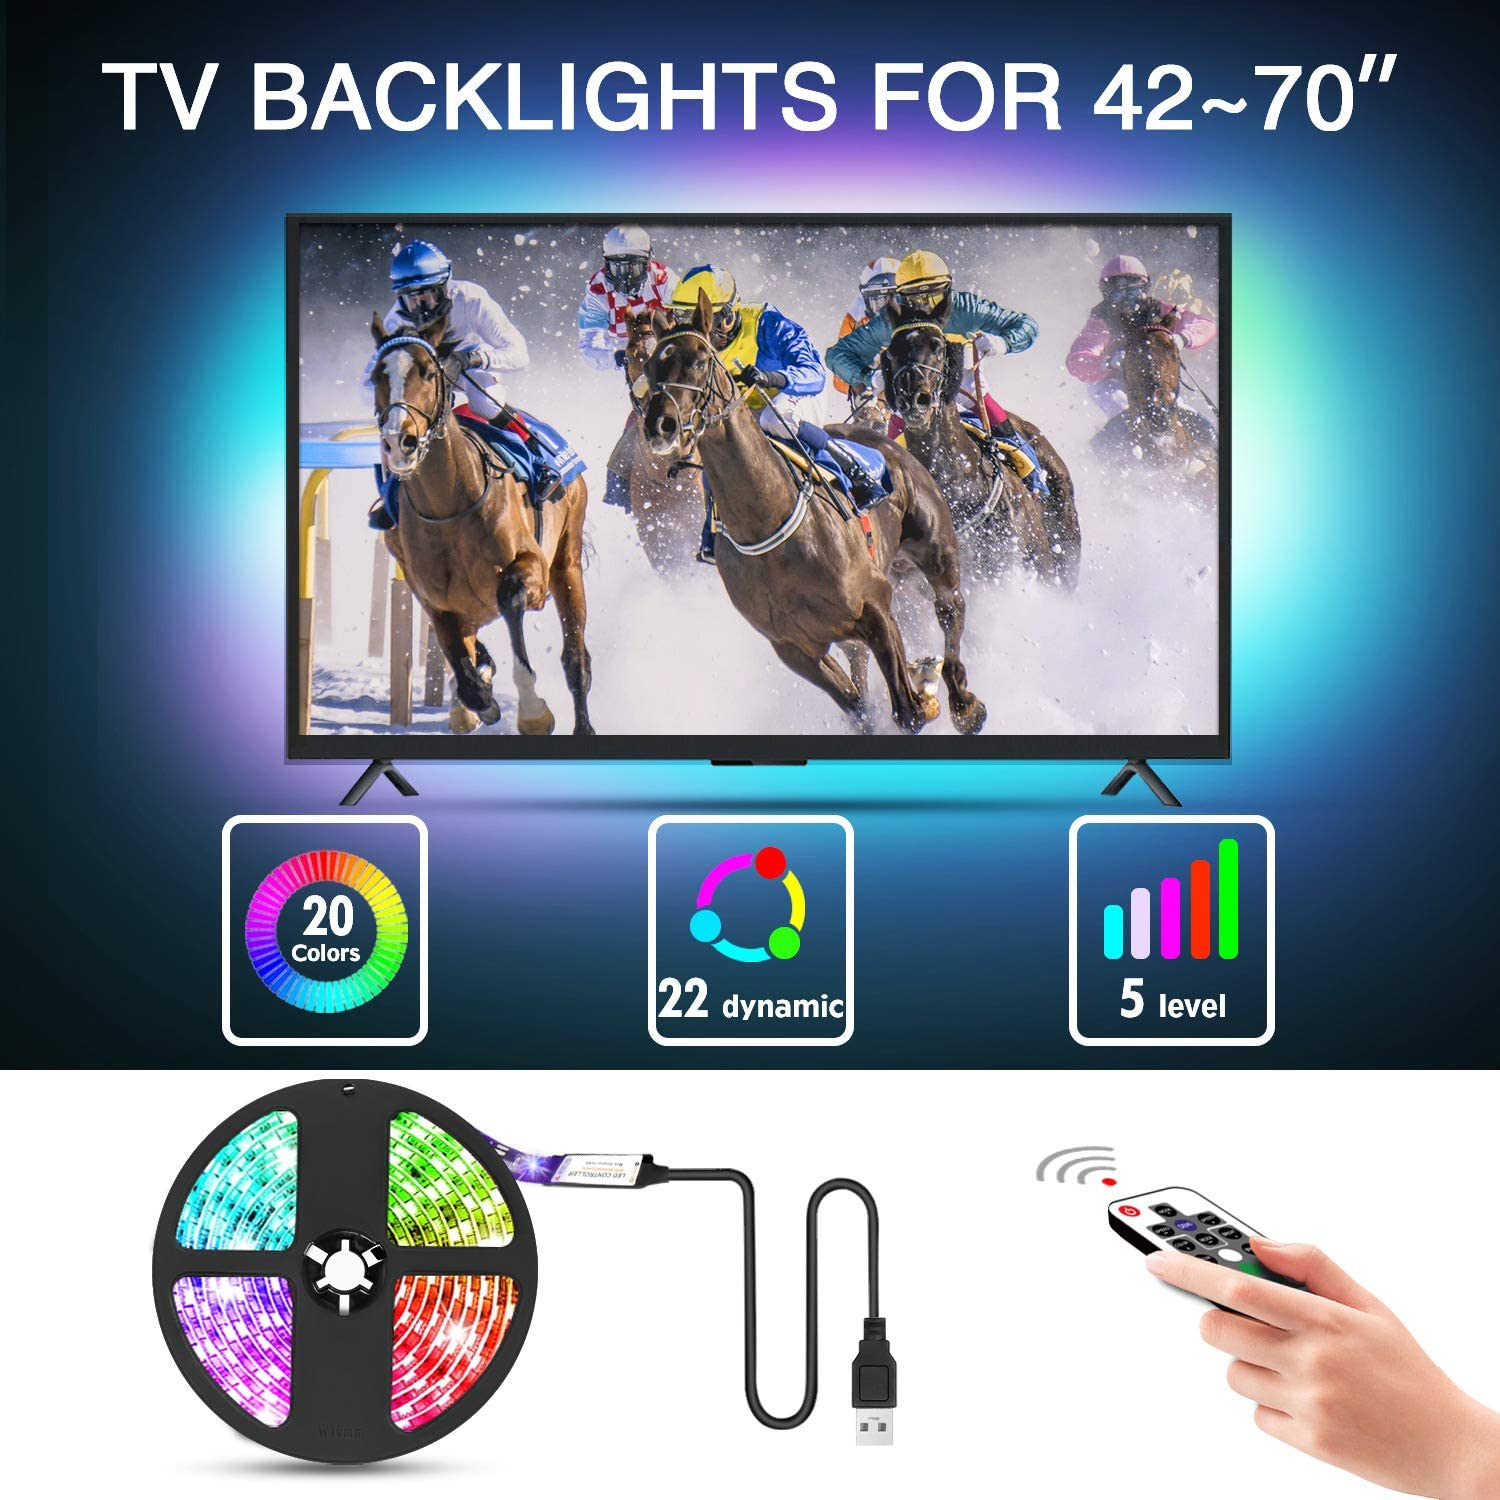 Mounting Dream Led Strip Lights with Remote 9.8ft for 42-70 inch TVs, Waterproof USB TV Backlight Kit, LED Light Strip with 20 Colors Changing 5050 for Car, Bedroom, HDTV, PC Monitor, Home, MD50S425